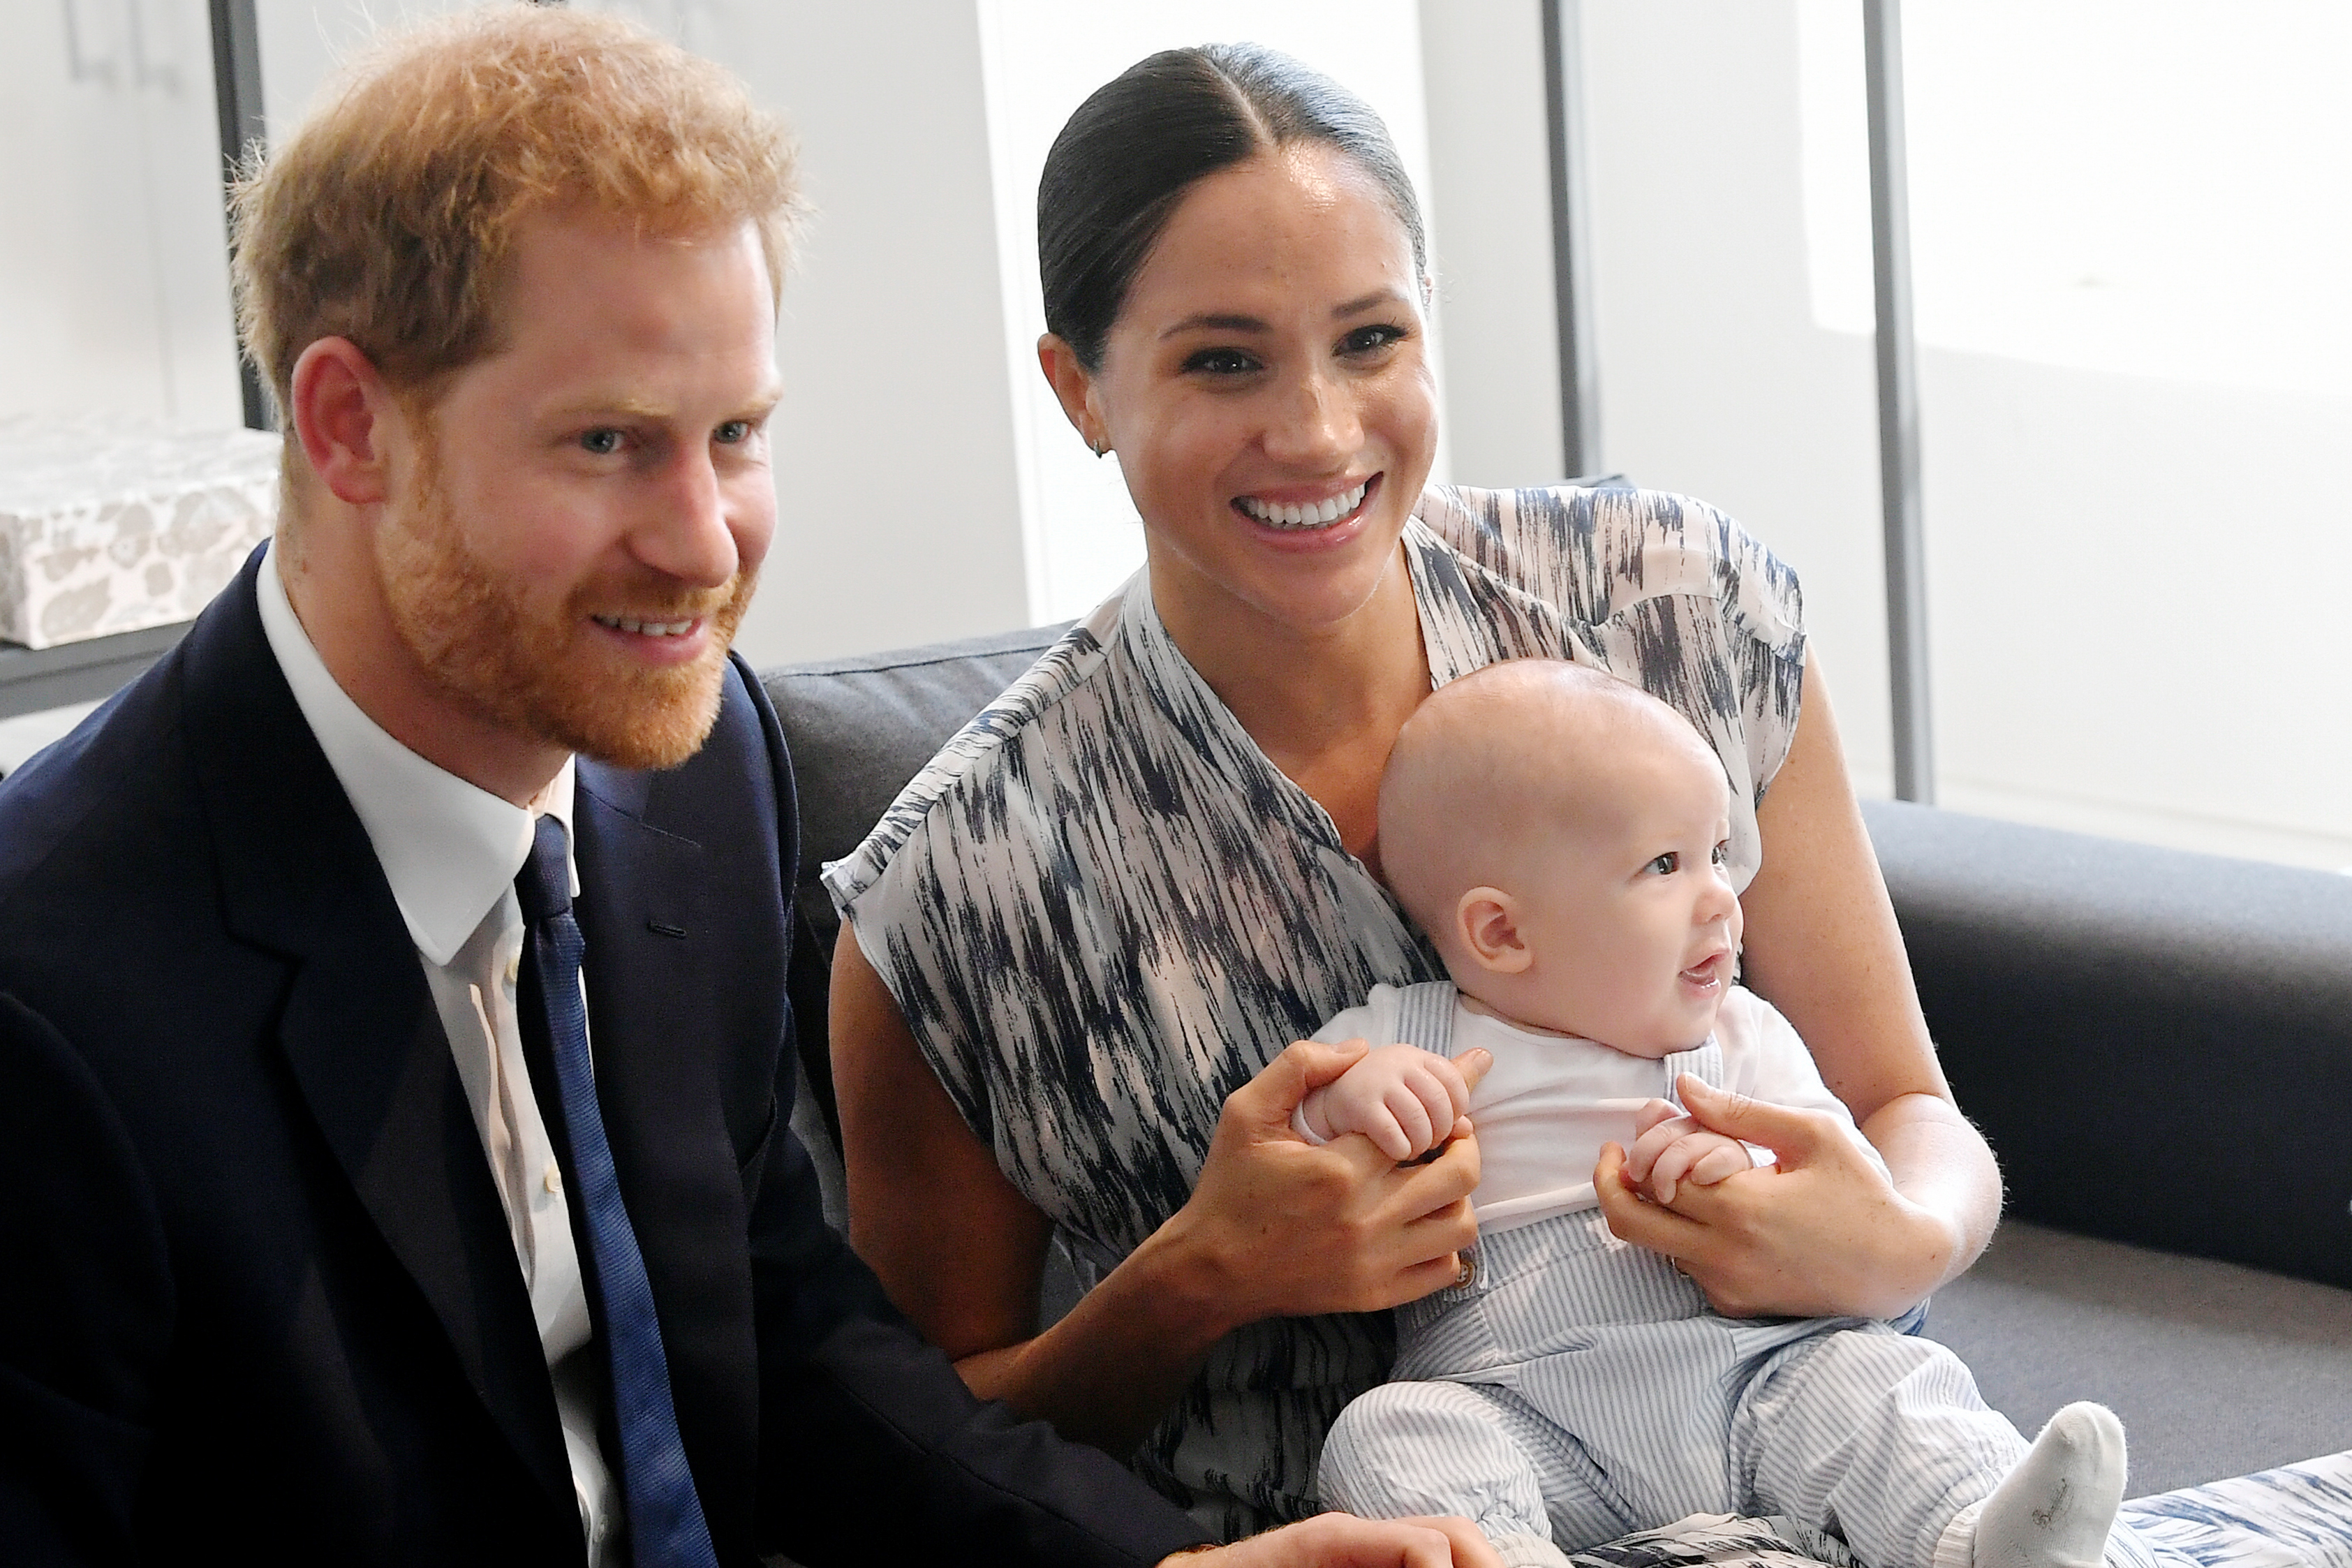 Prince Harry reveals emotional first for Archie during first speech since royal split